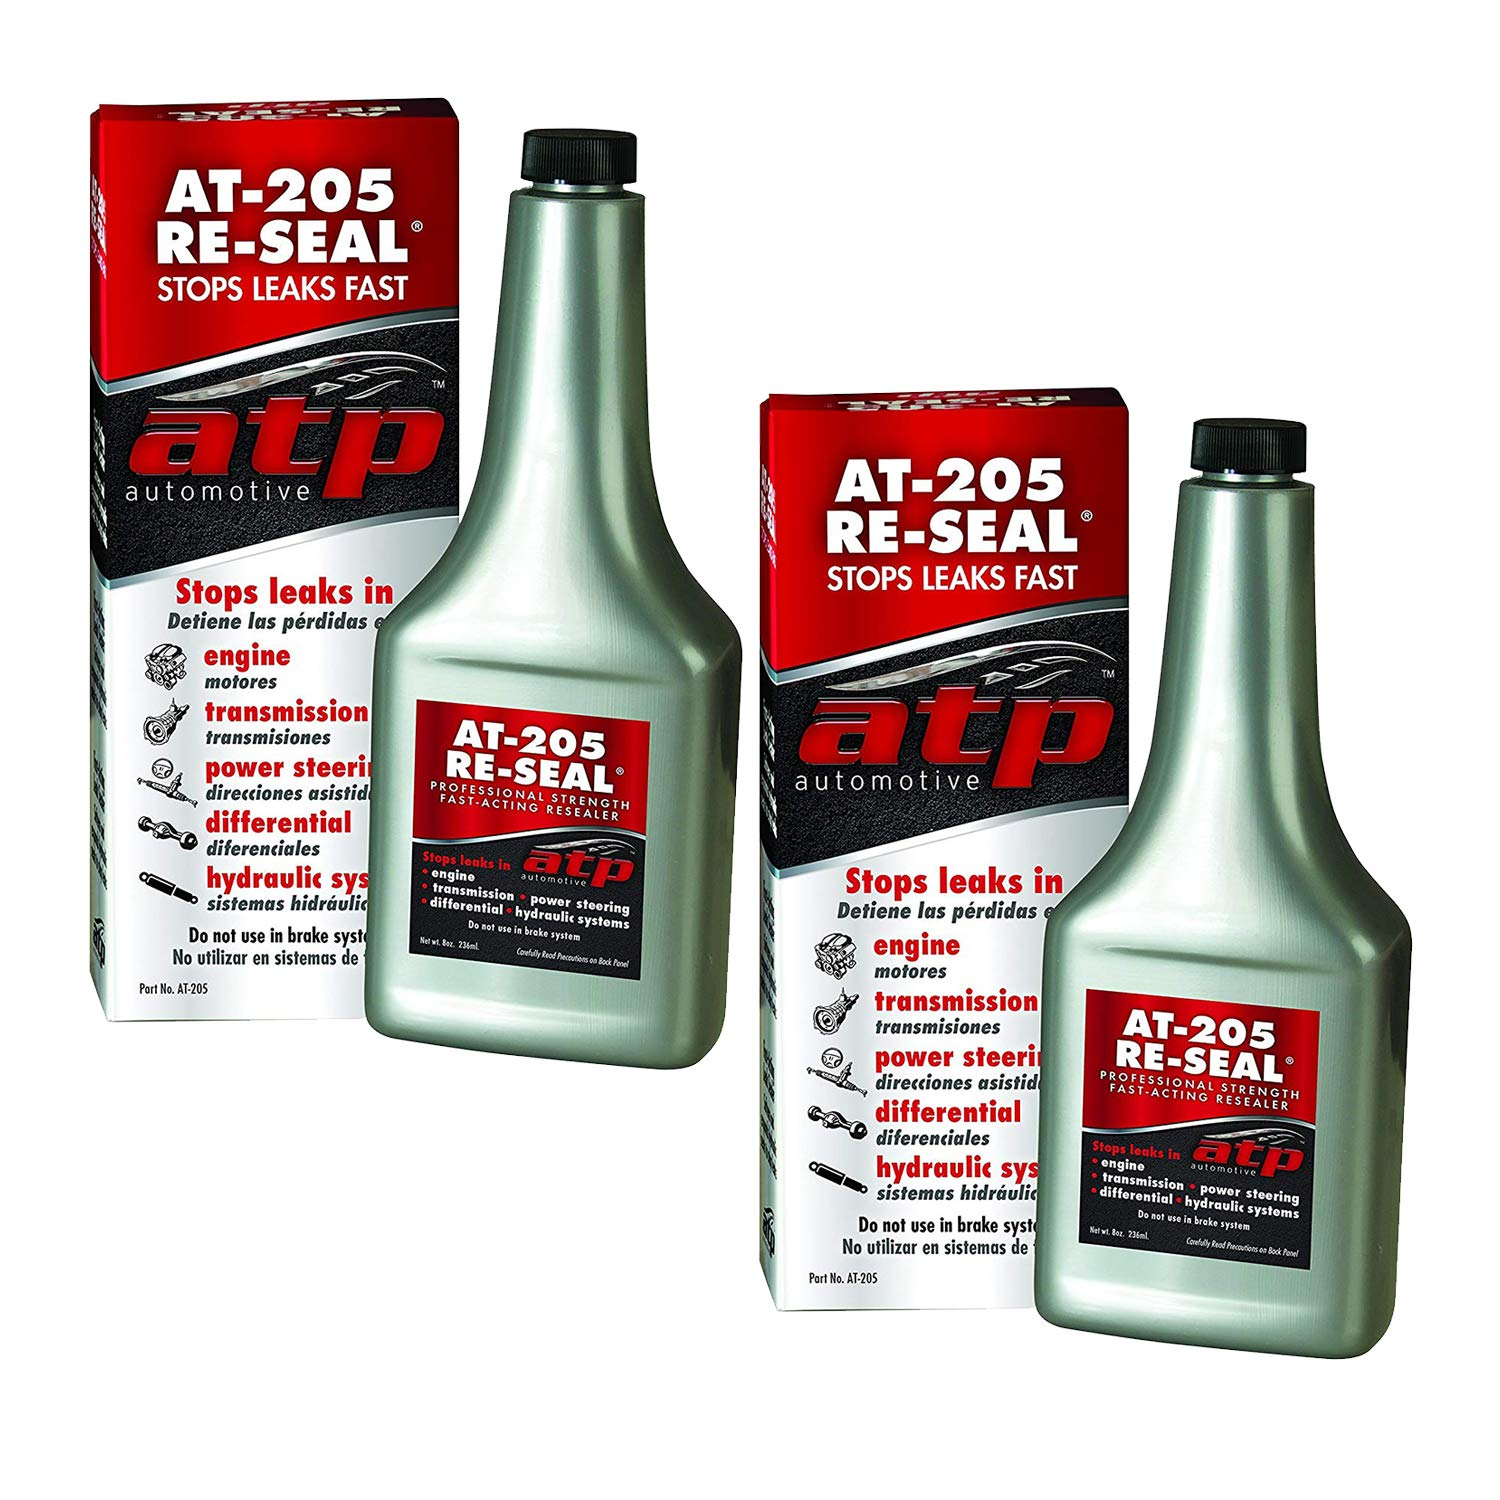 ATP Automotive AT-205 Re-Seal Stops Leaks, 8 Ounce Bottle (2 Pack)